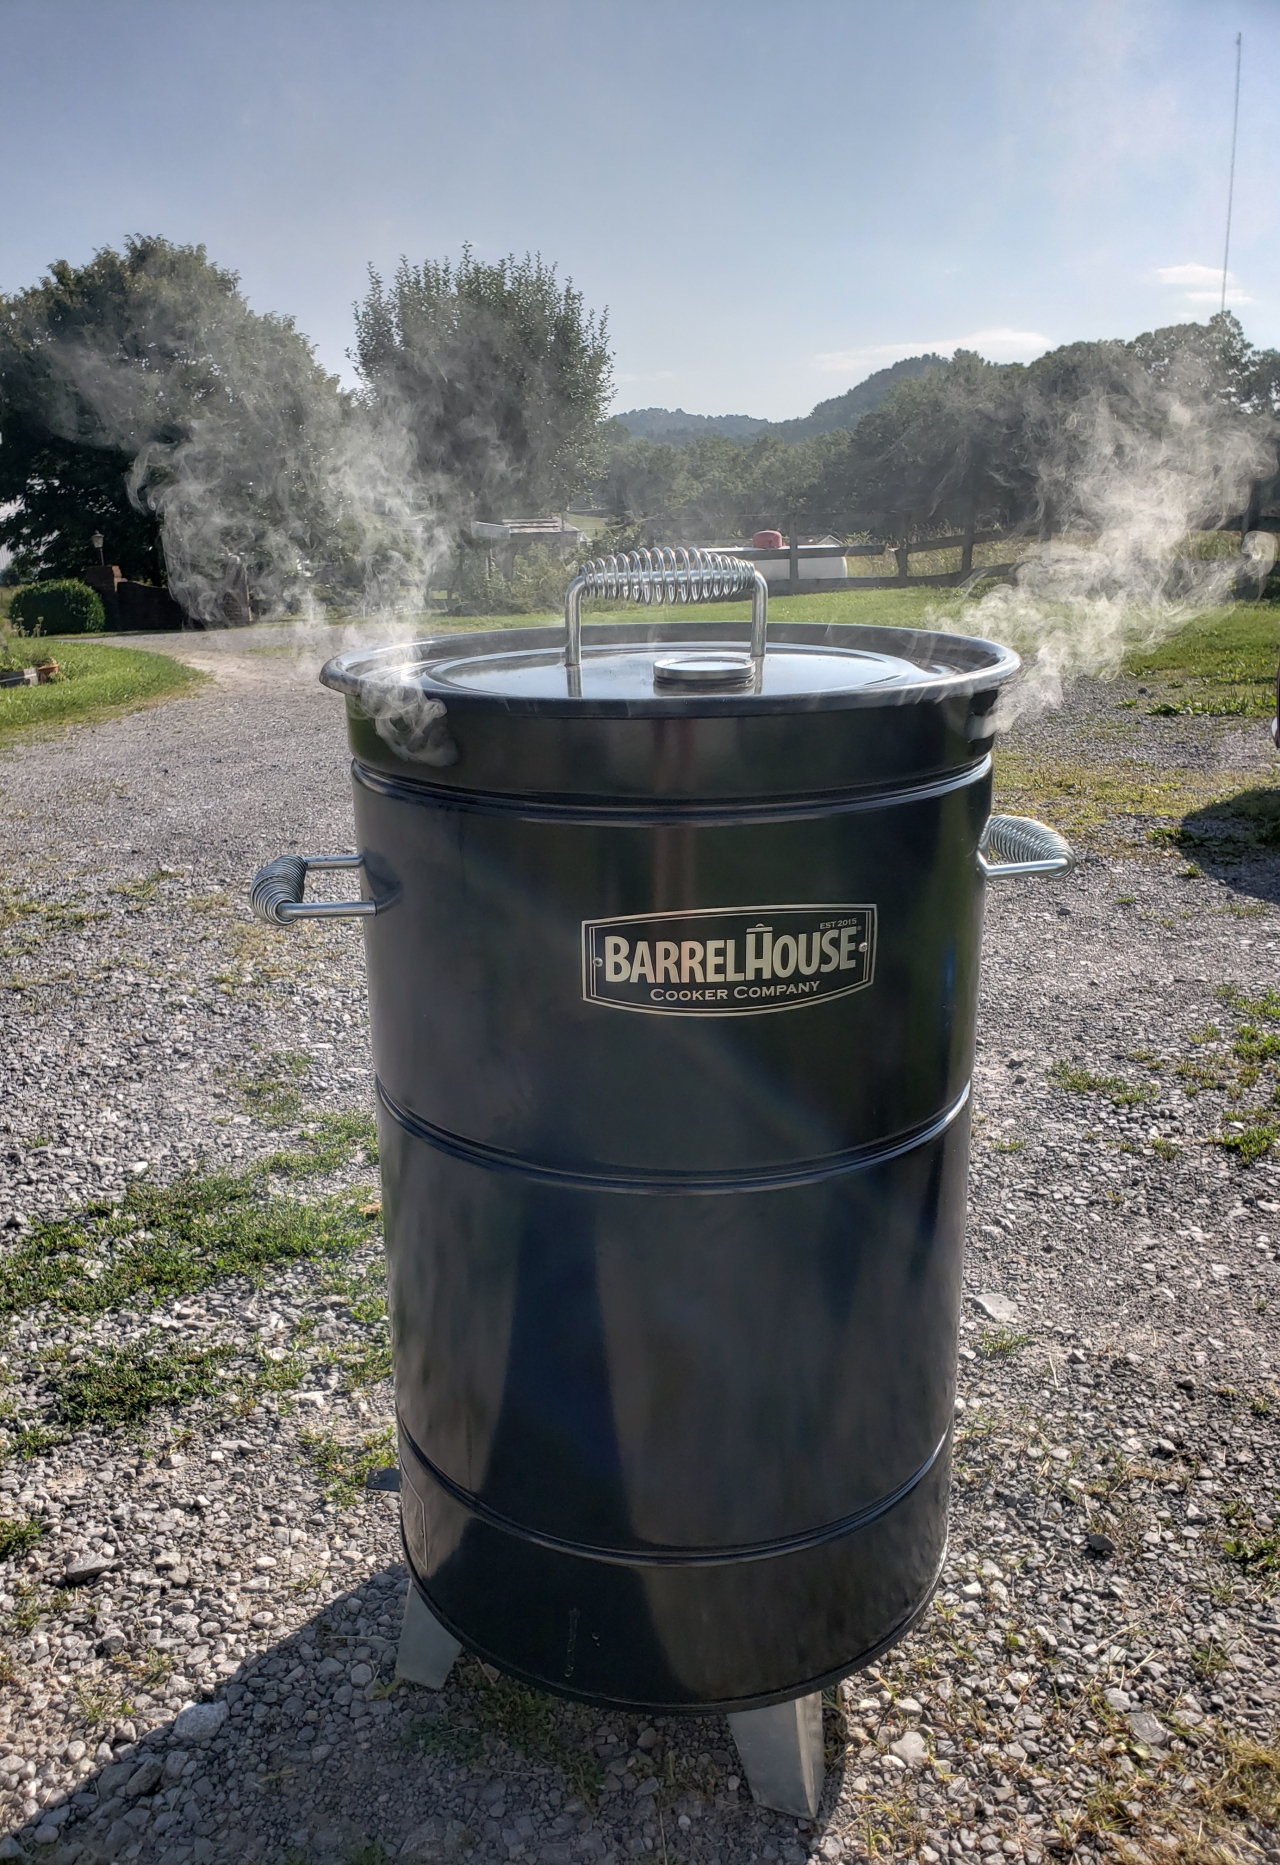 Is It Still Worth it to Buy a Barrel House Cooker?